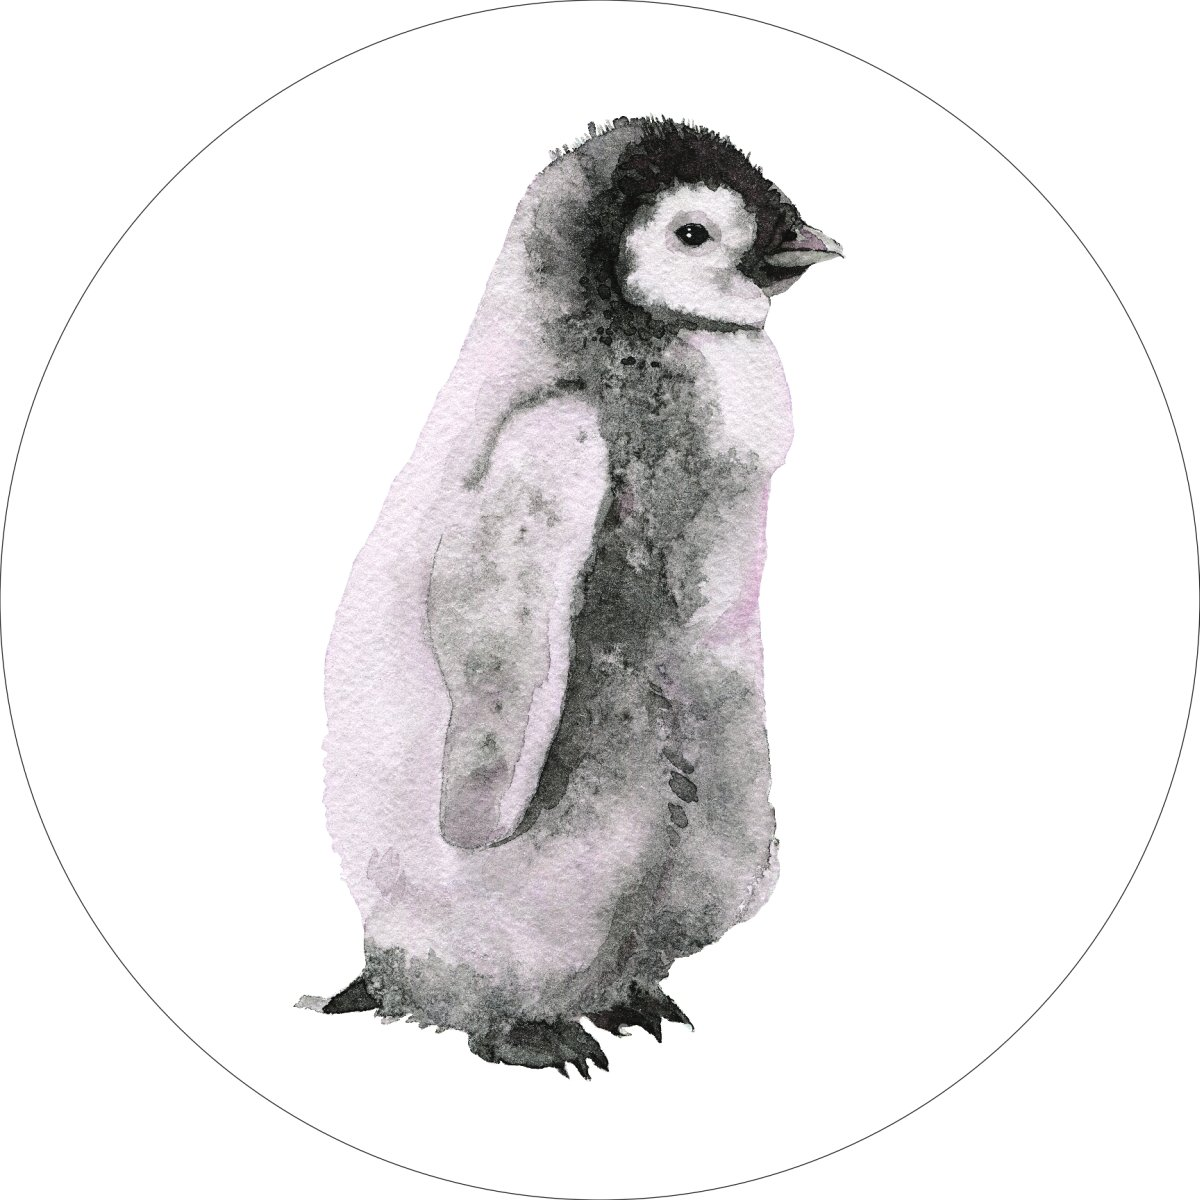 Penguin Home Wall Shelf Decor Animal Decorations Watercolor Round Sign - 18 Inch, Metal